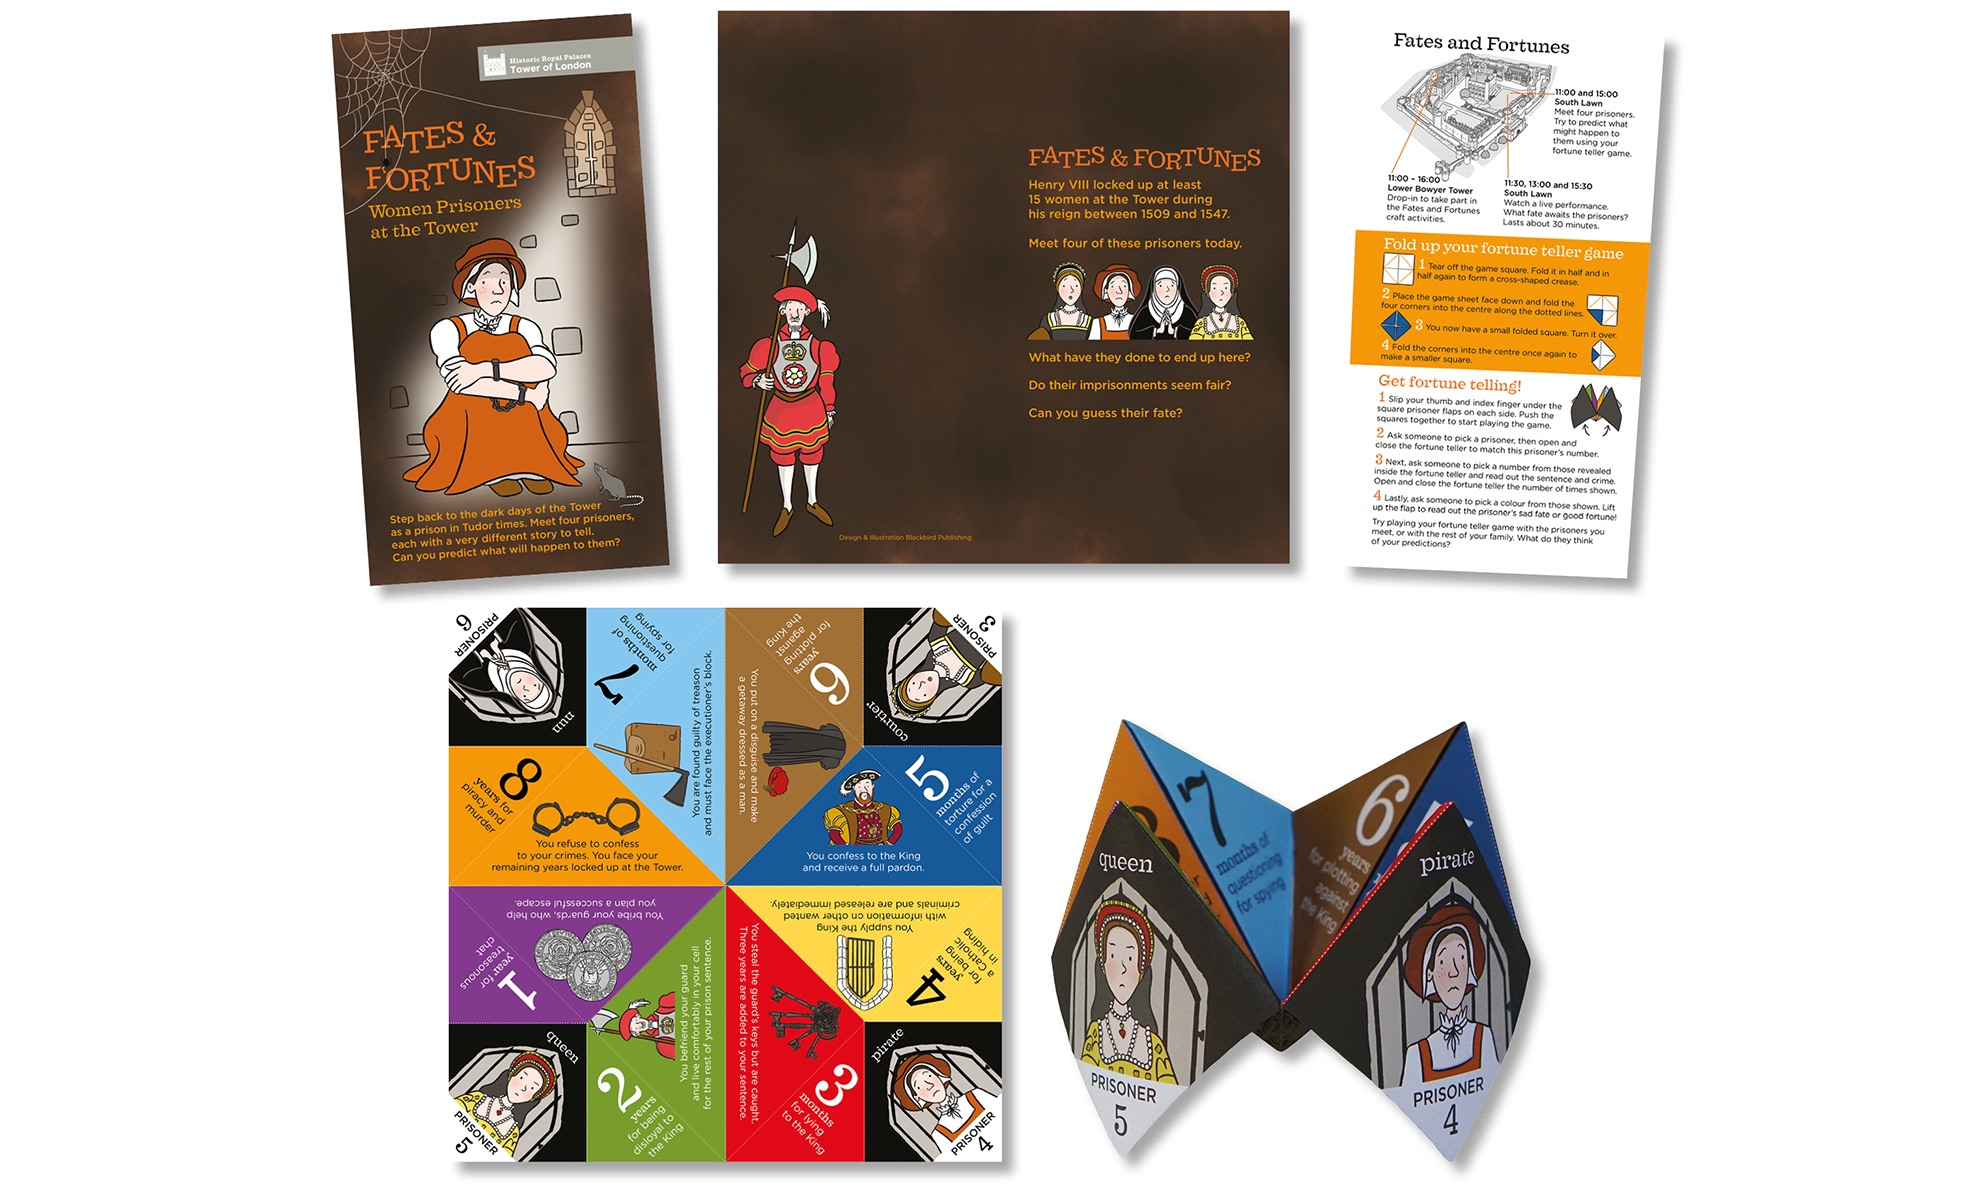 Blackbird Publishing HRP Tower of London Fates & Fortunes family activity trail Fortune teller game